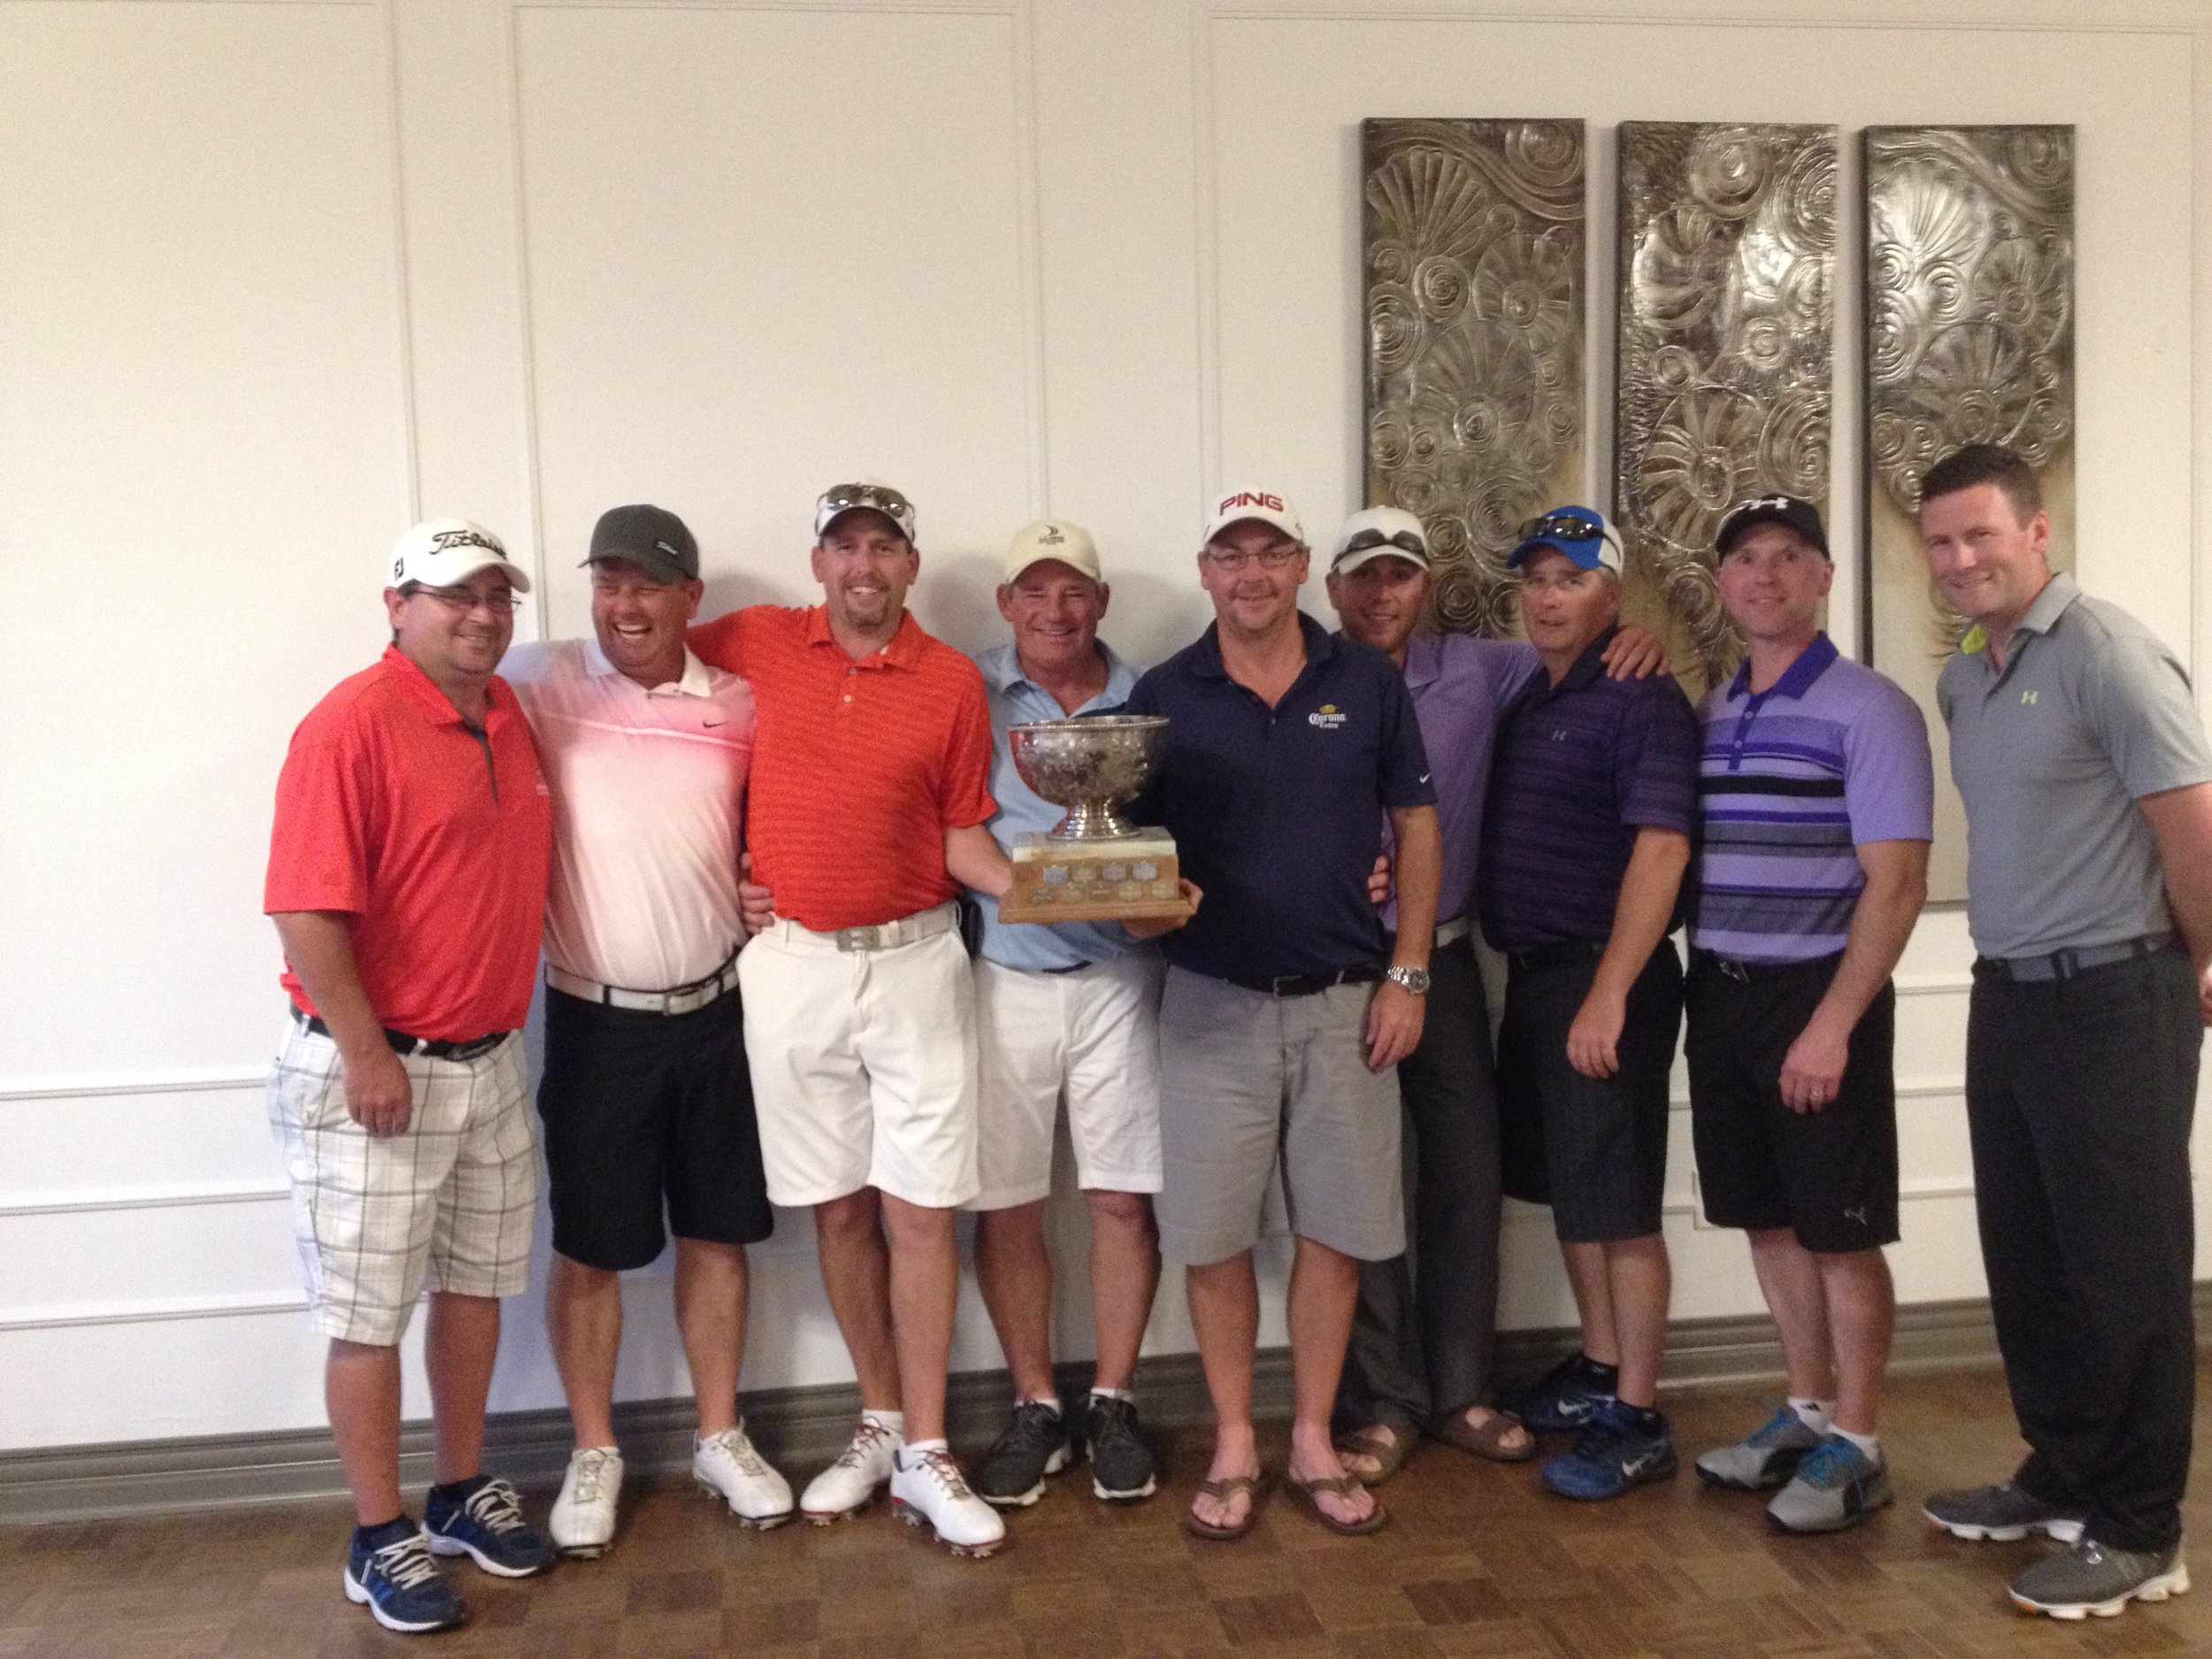 From left to right; Darwin McAllister, Rob Maltby, Eric Babin, Pat Flanagan, Kevin MacAllister, Nigel Flett, Ted Carroll, Greg Savoy and Ryan Tracy. Absent are Edgar Daigle, Mark Dunnett, Brad Regan and Sean Losier.